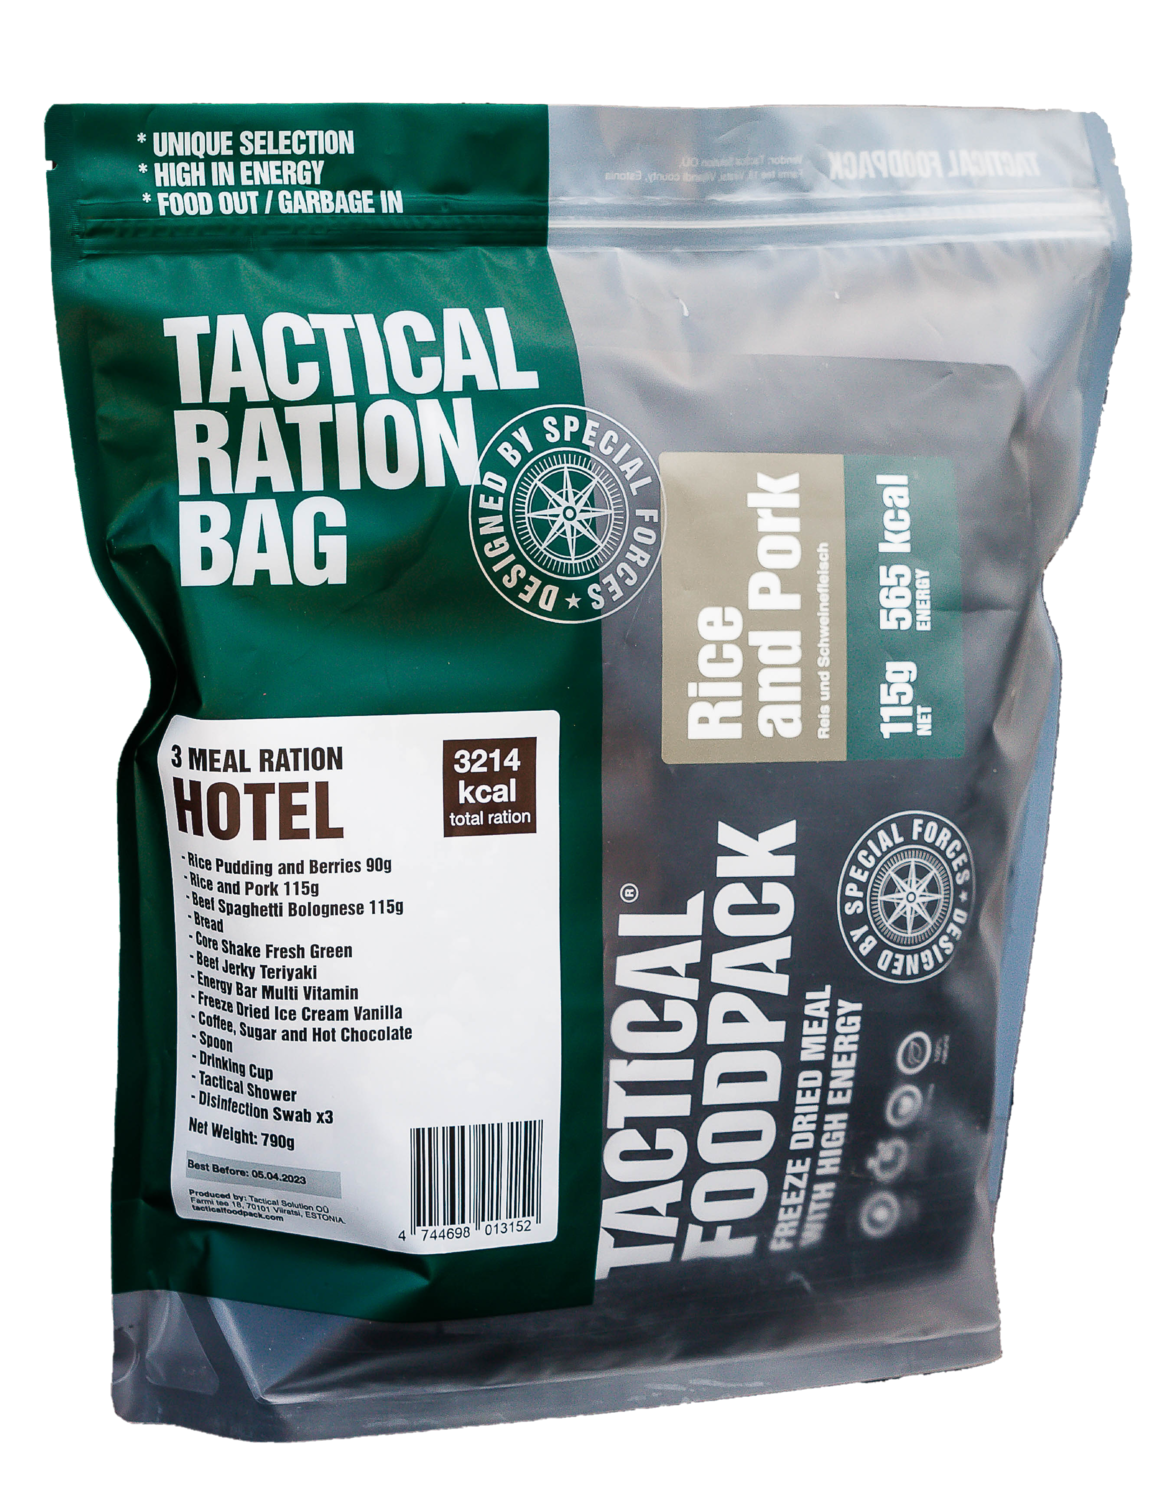 Tactical Foodpack - 3 Meal Ration Hotel